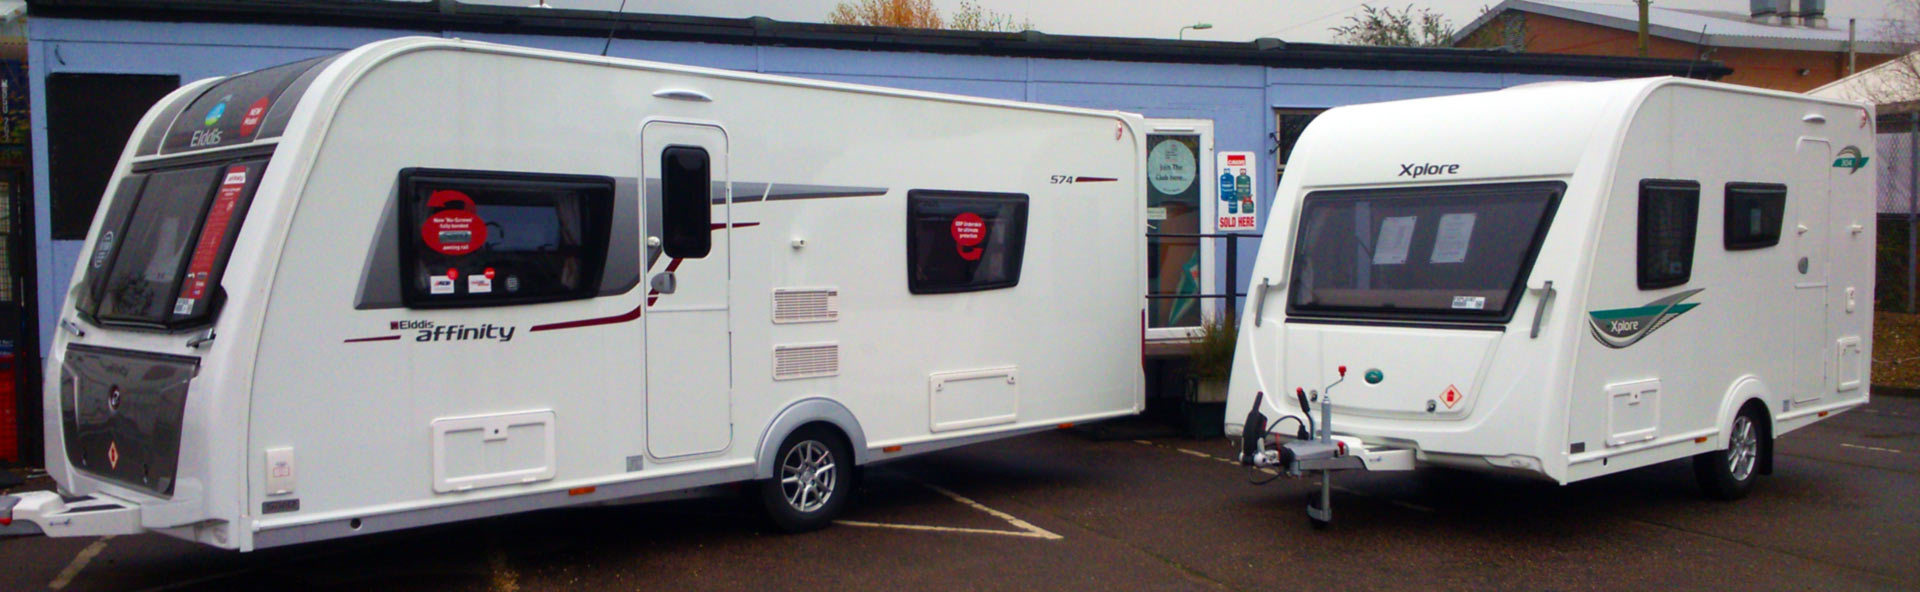 Caravan sales, service and repairs Sudbury, Suffolk